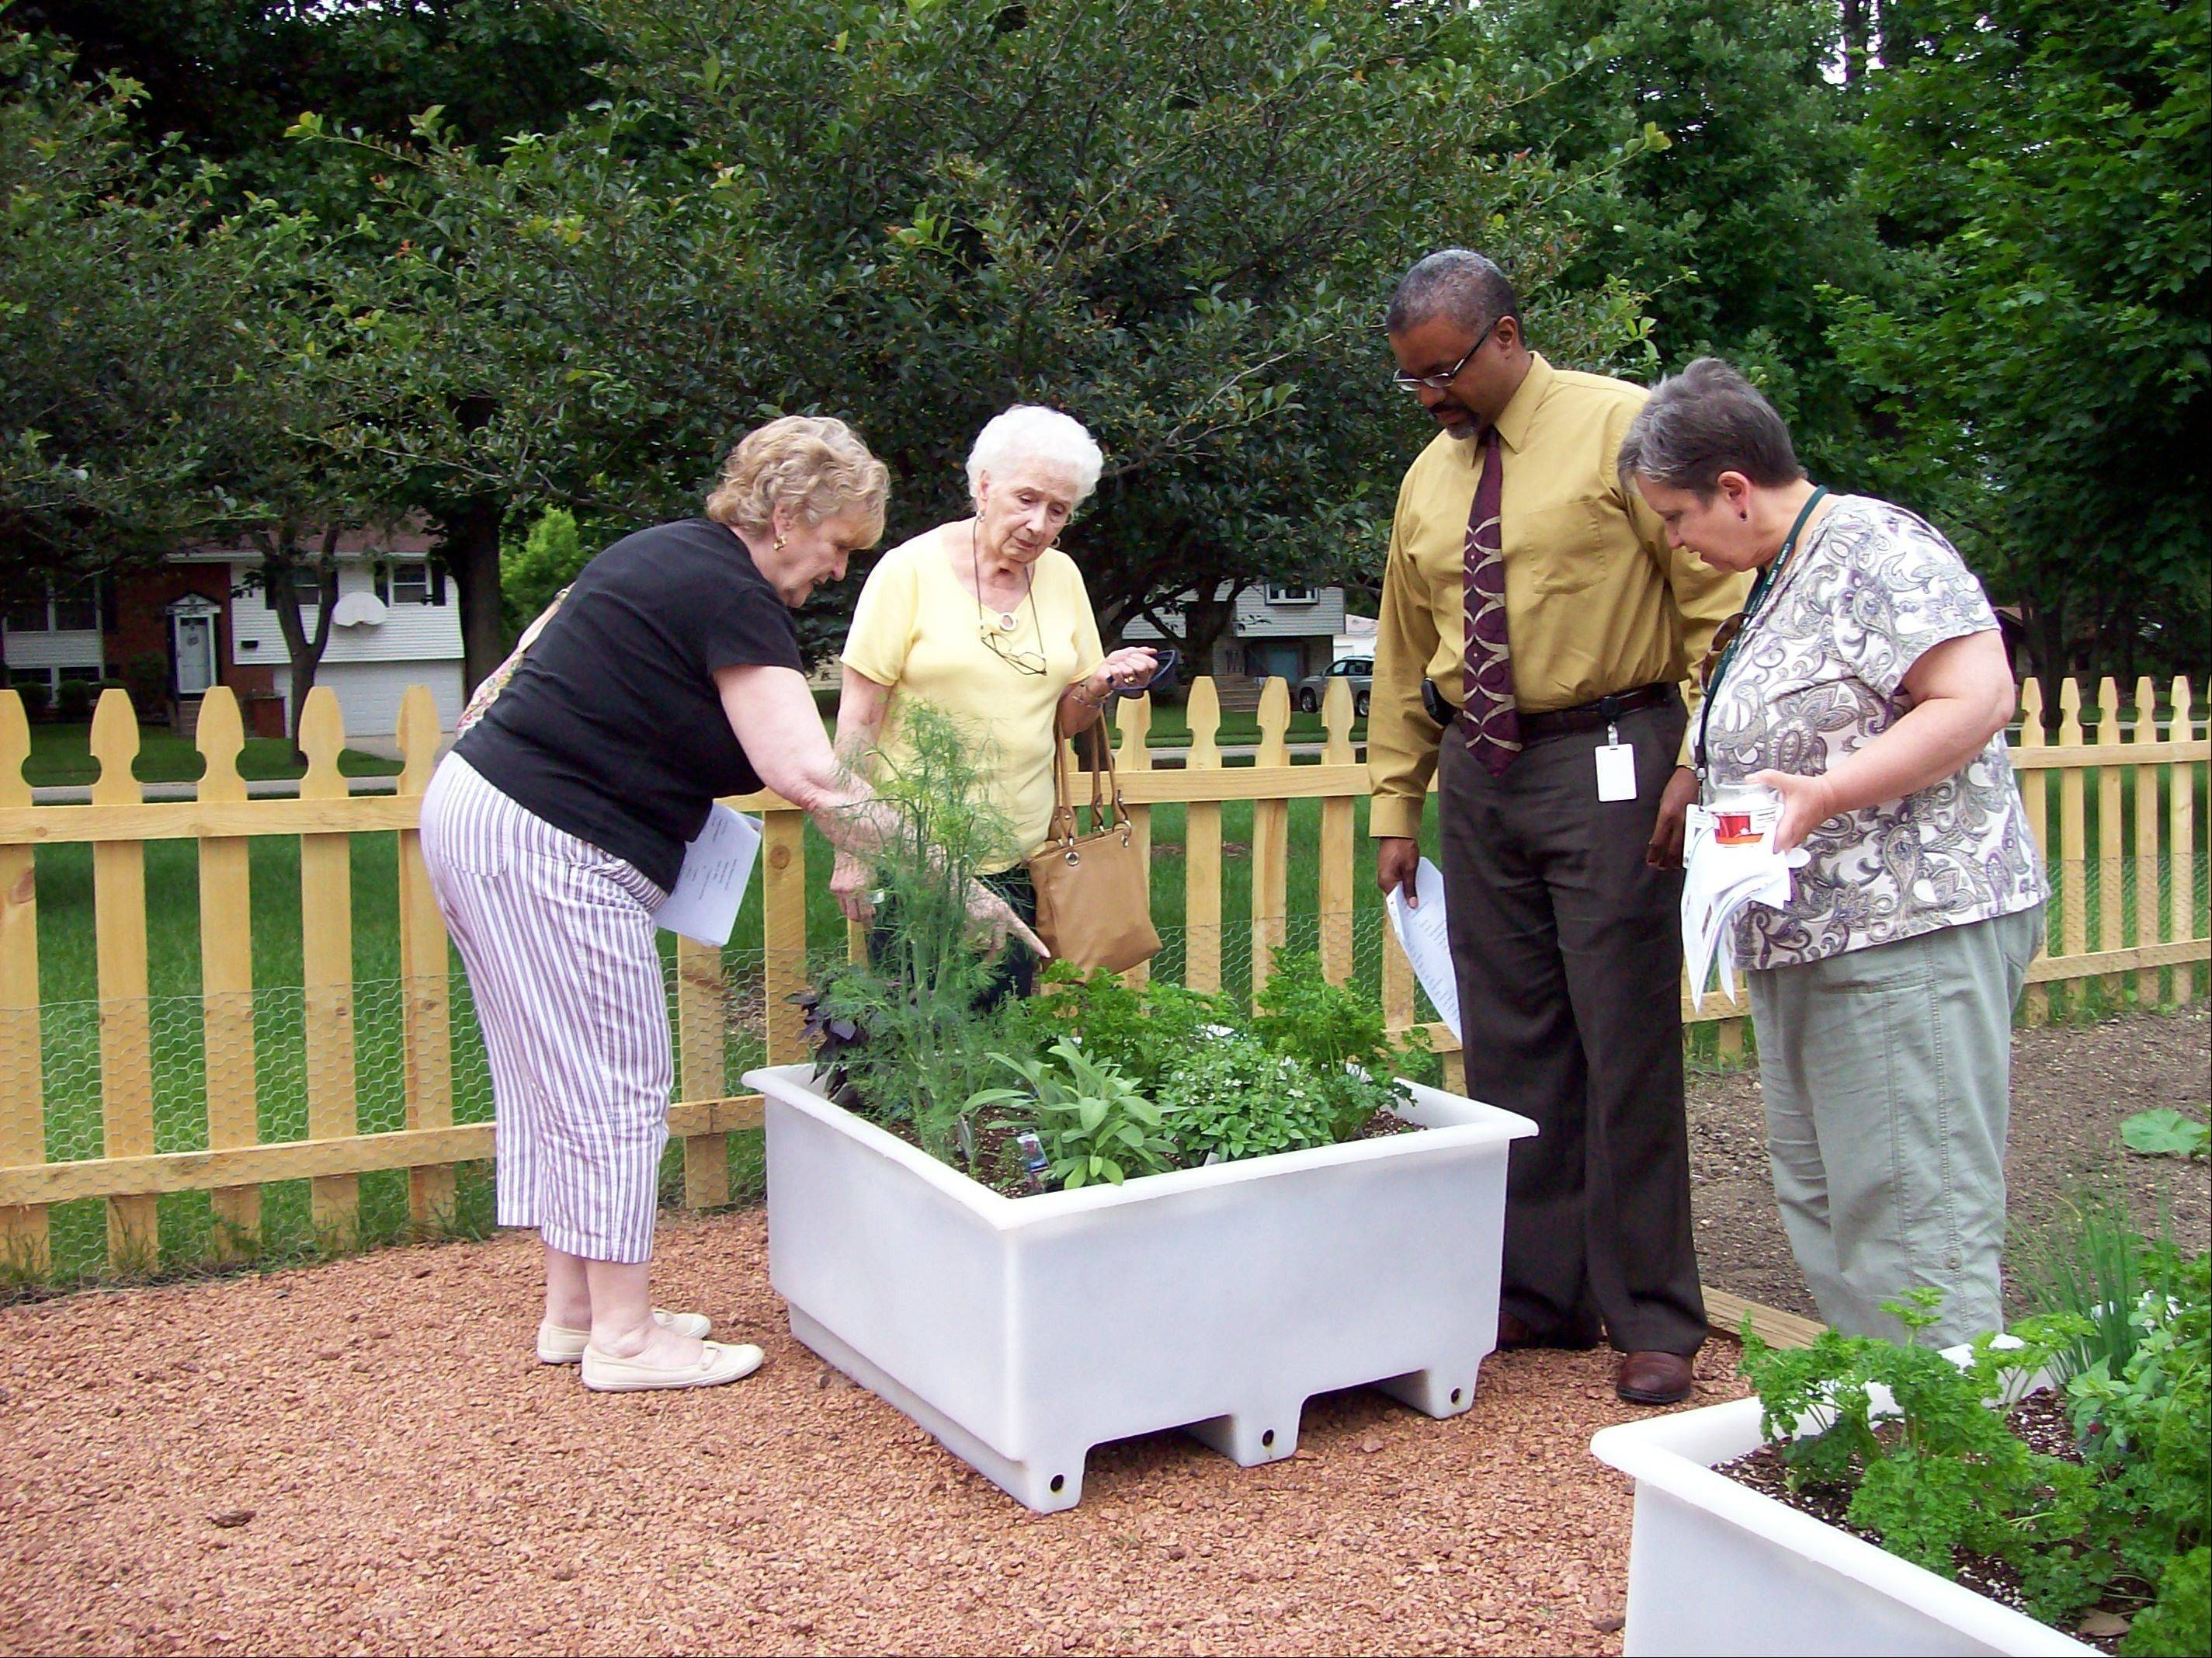 Raised beds and walkways make the garden easy for all age groups to participate in its maintenance and care.